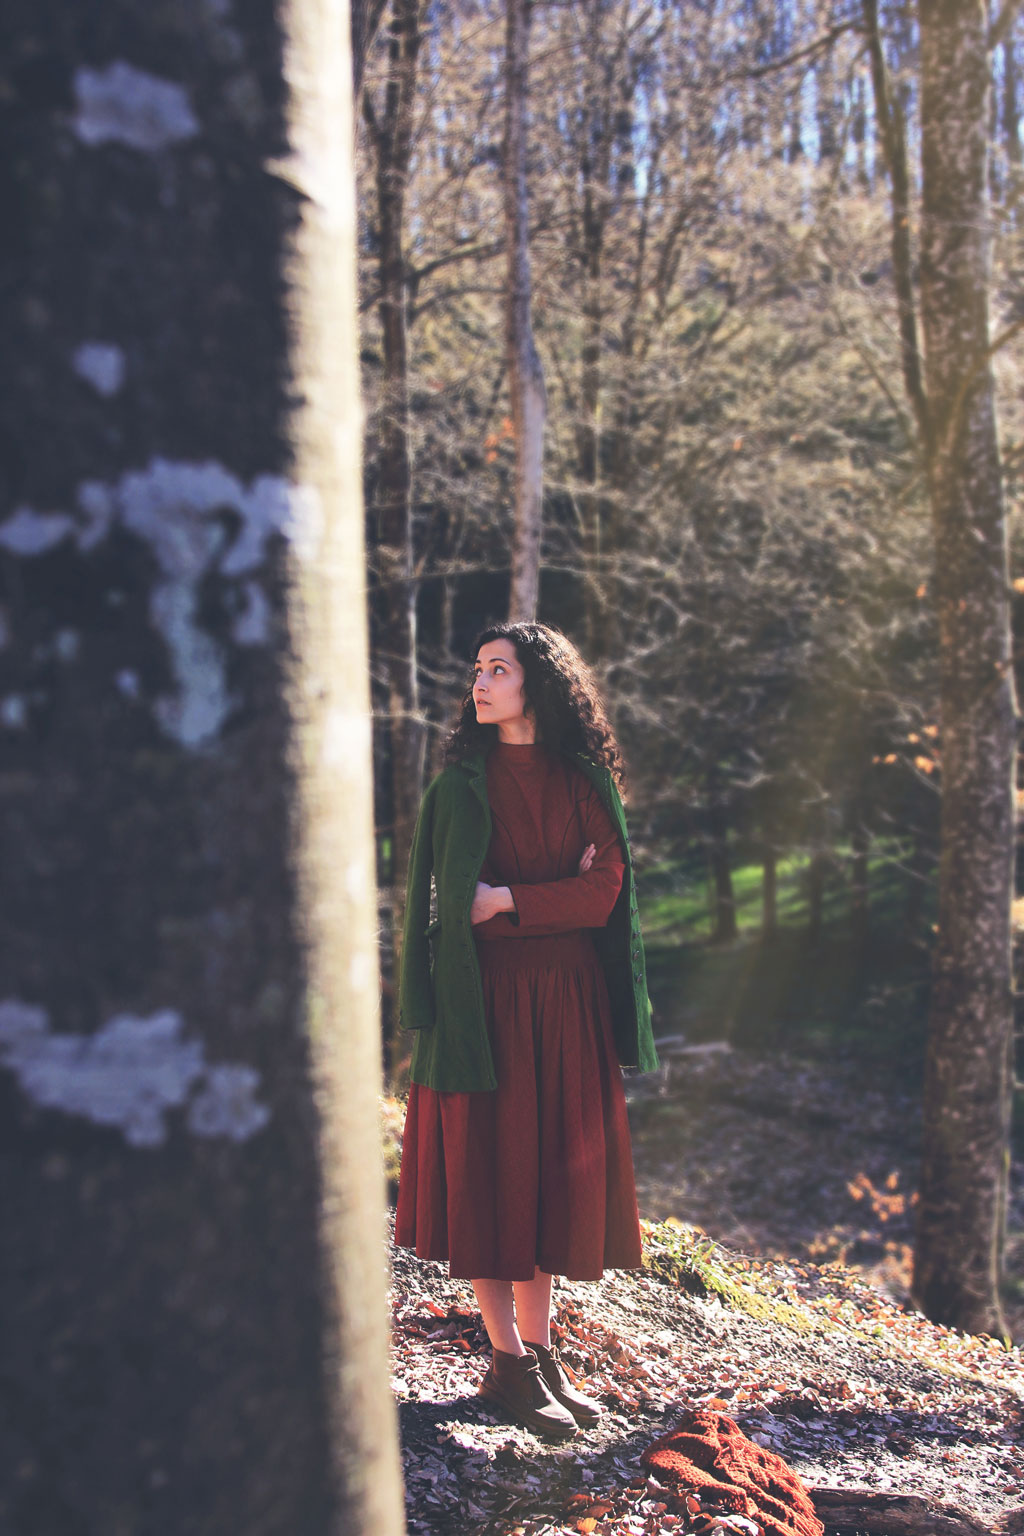 woman in red dress and green coat standing in forest, looking to the side